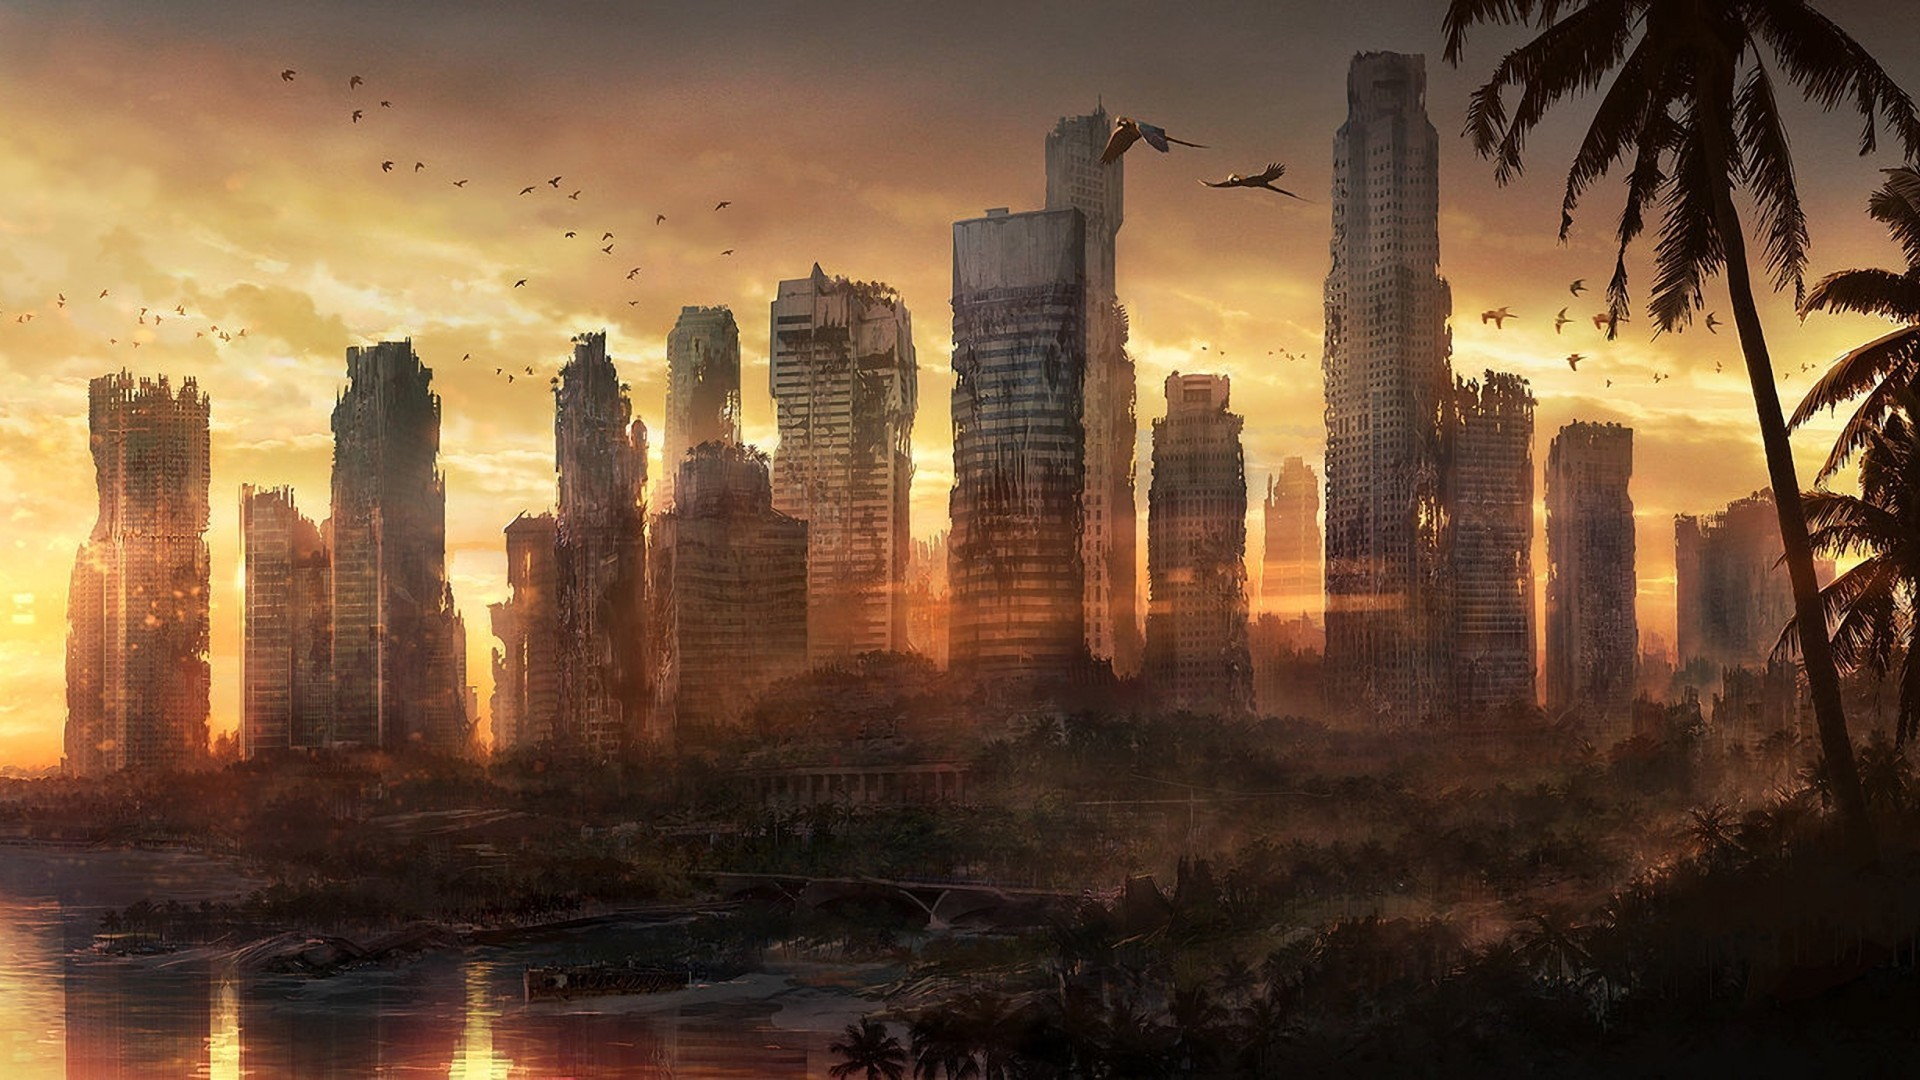 game post apocalyptic stronghold post apocalyptic russia apocalyptic 1920x1080